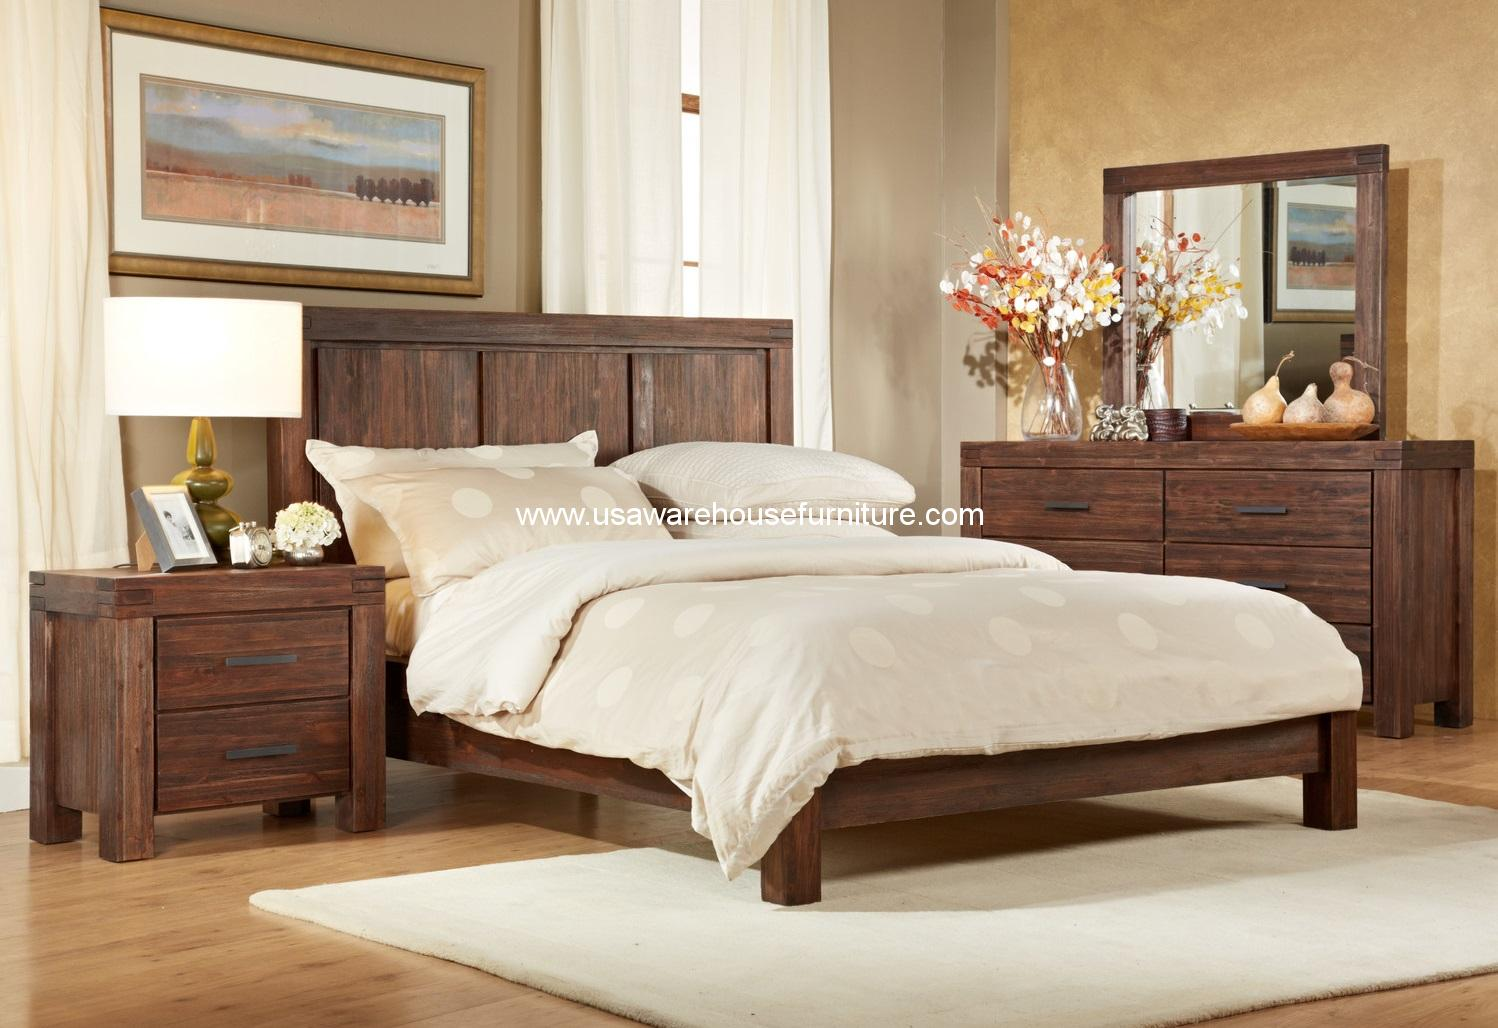 4 piece meadow solid wood bedroom set usa warehouse furniture. Black Bedroom Furniture Sets. Home Design Ideas